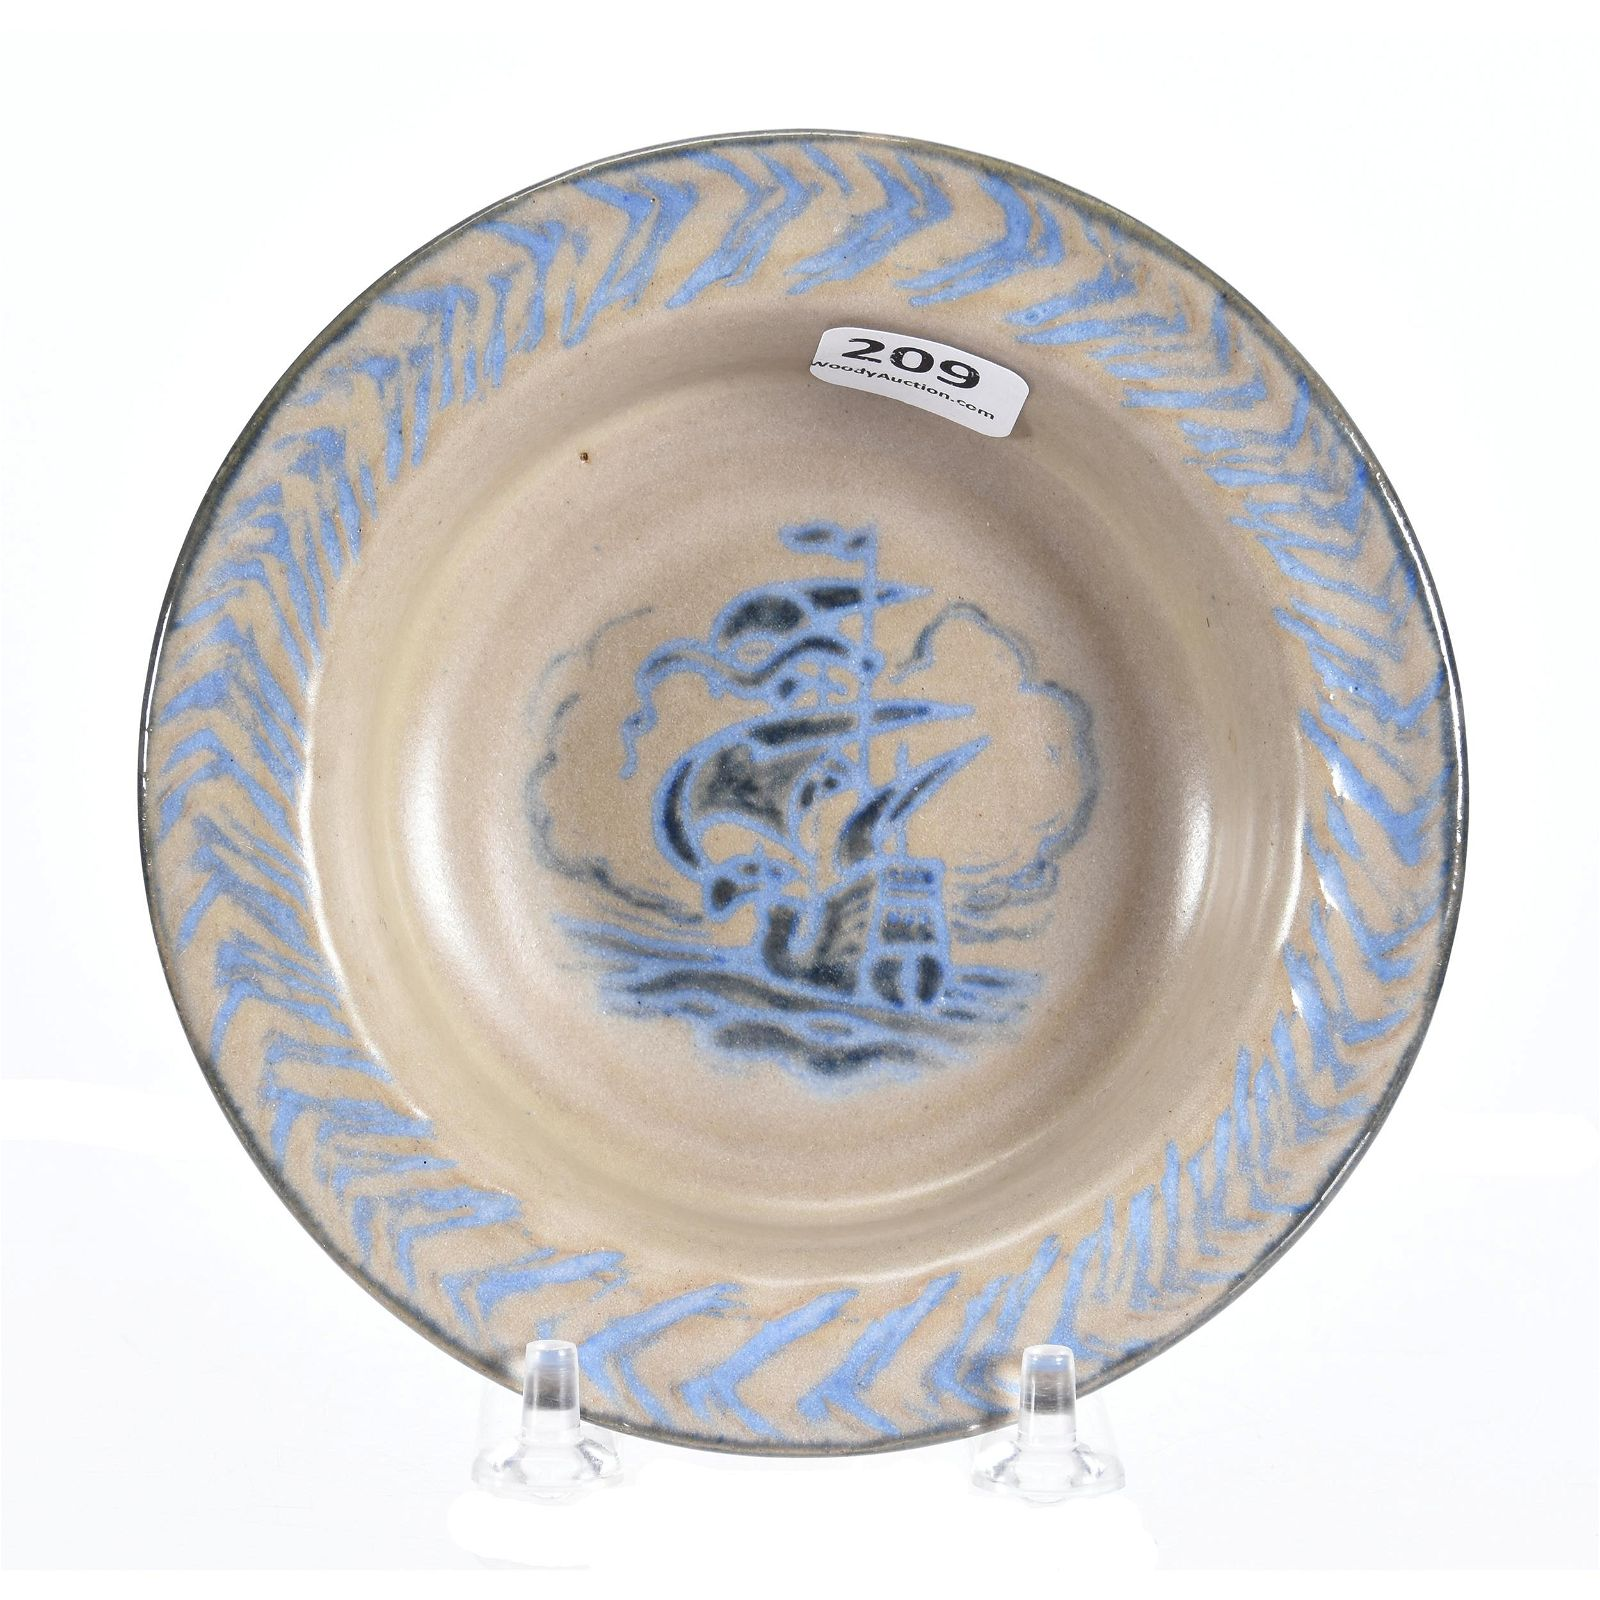 Dish, Art Pottery Marked Marblehead Pottery